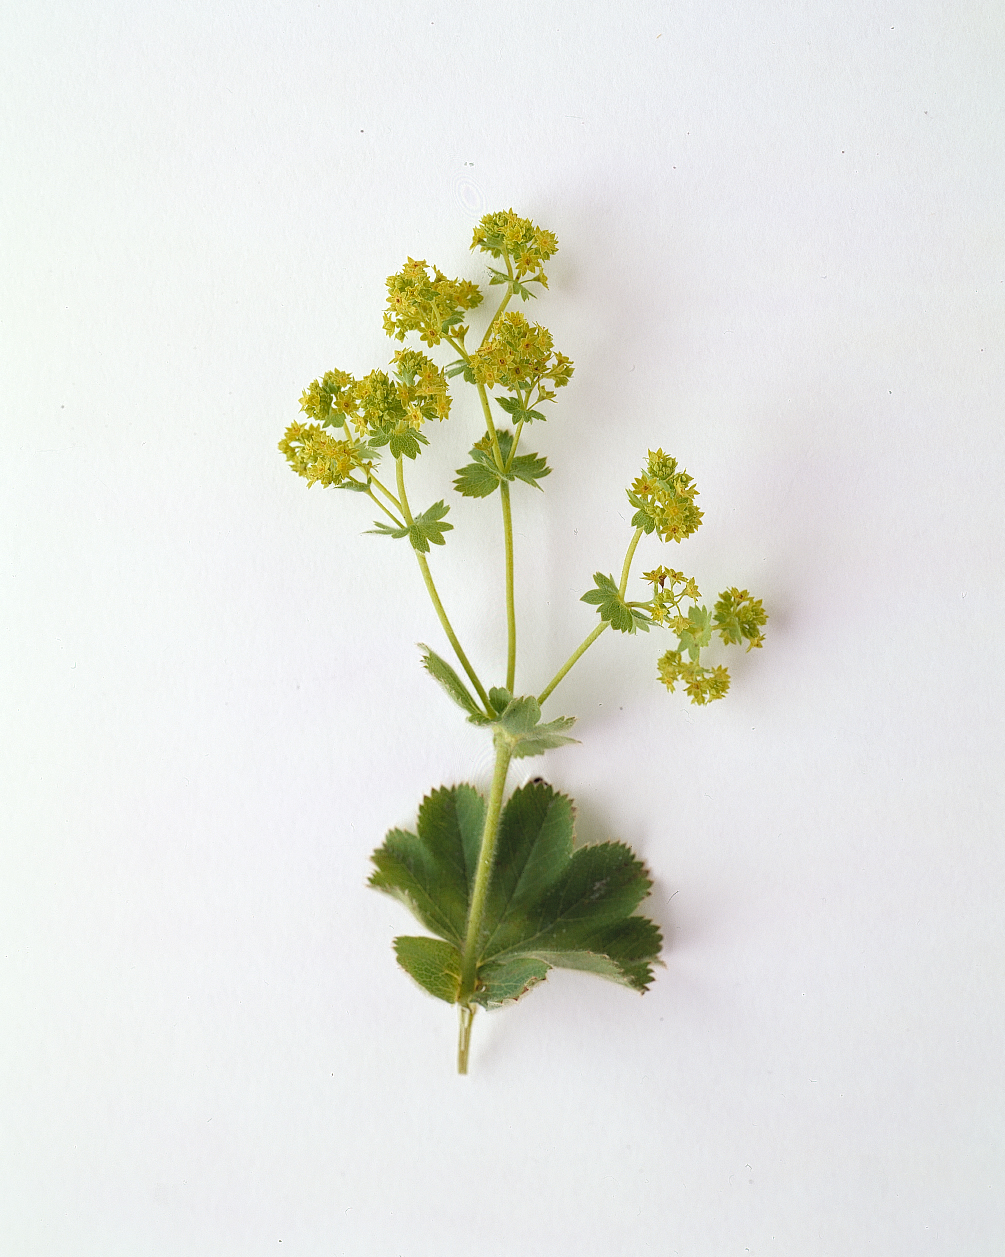 flower-glossary-ladysmantle-a98432-0415.jpg